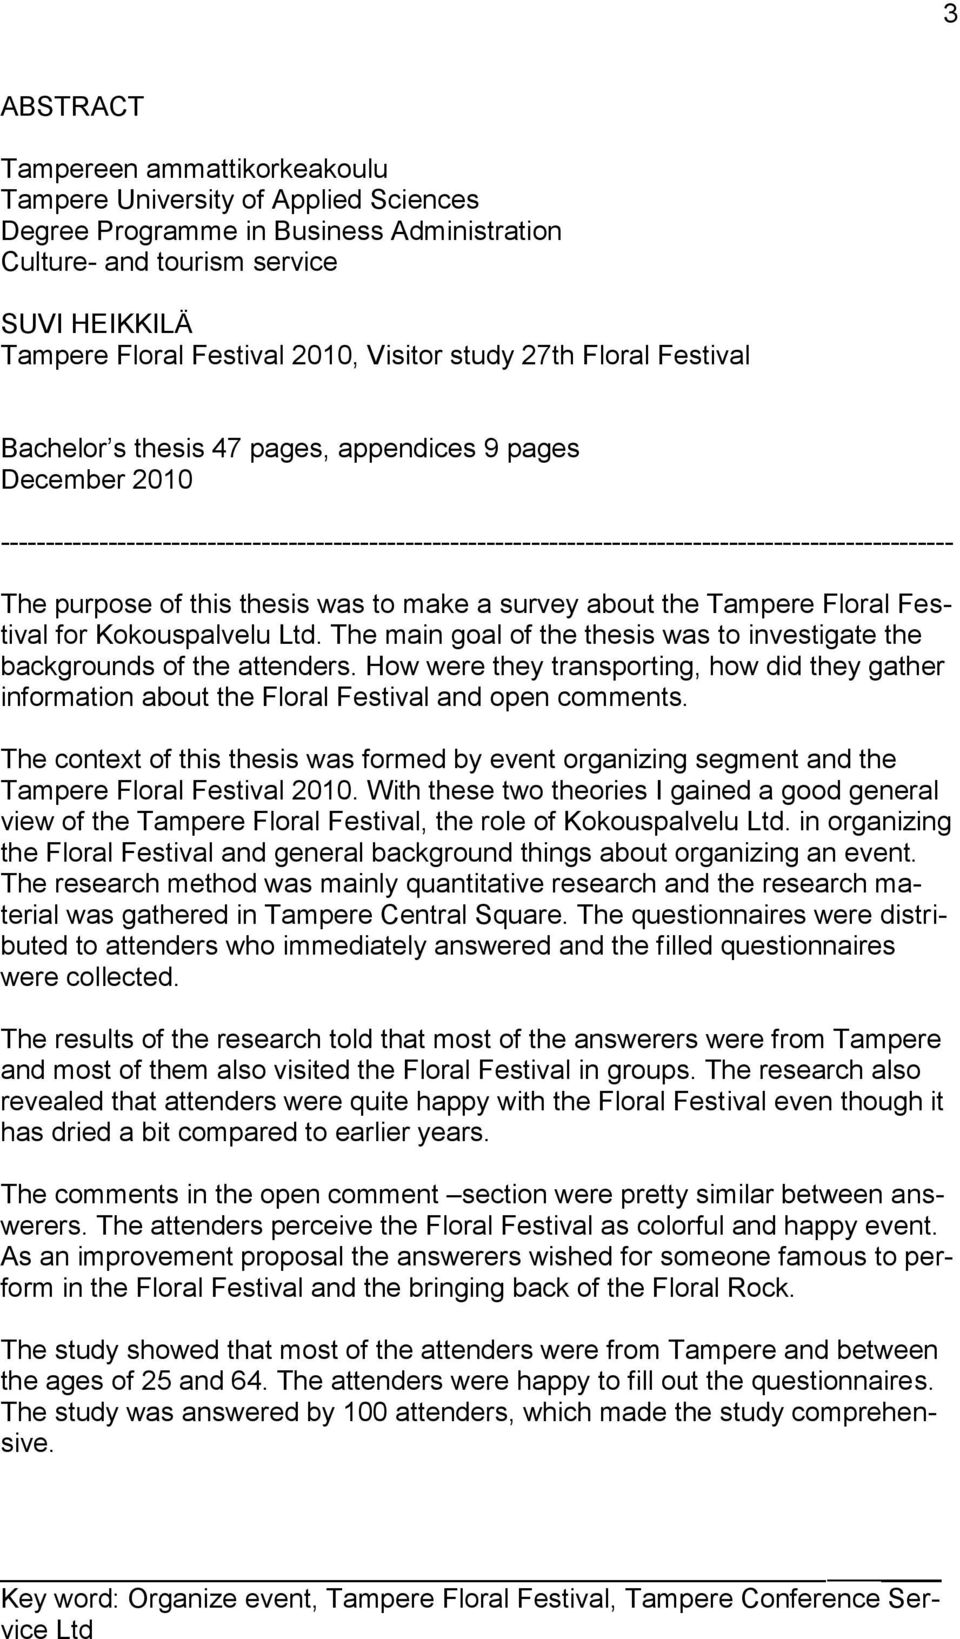 ---------------------------------------------------------------------------------------------------------- The purpose of this thesis was to make a survey about the Tampere Floral Festival for